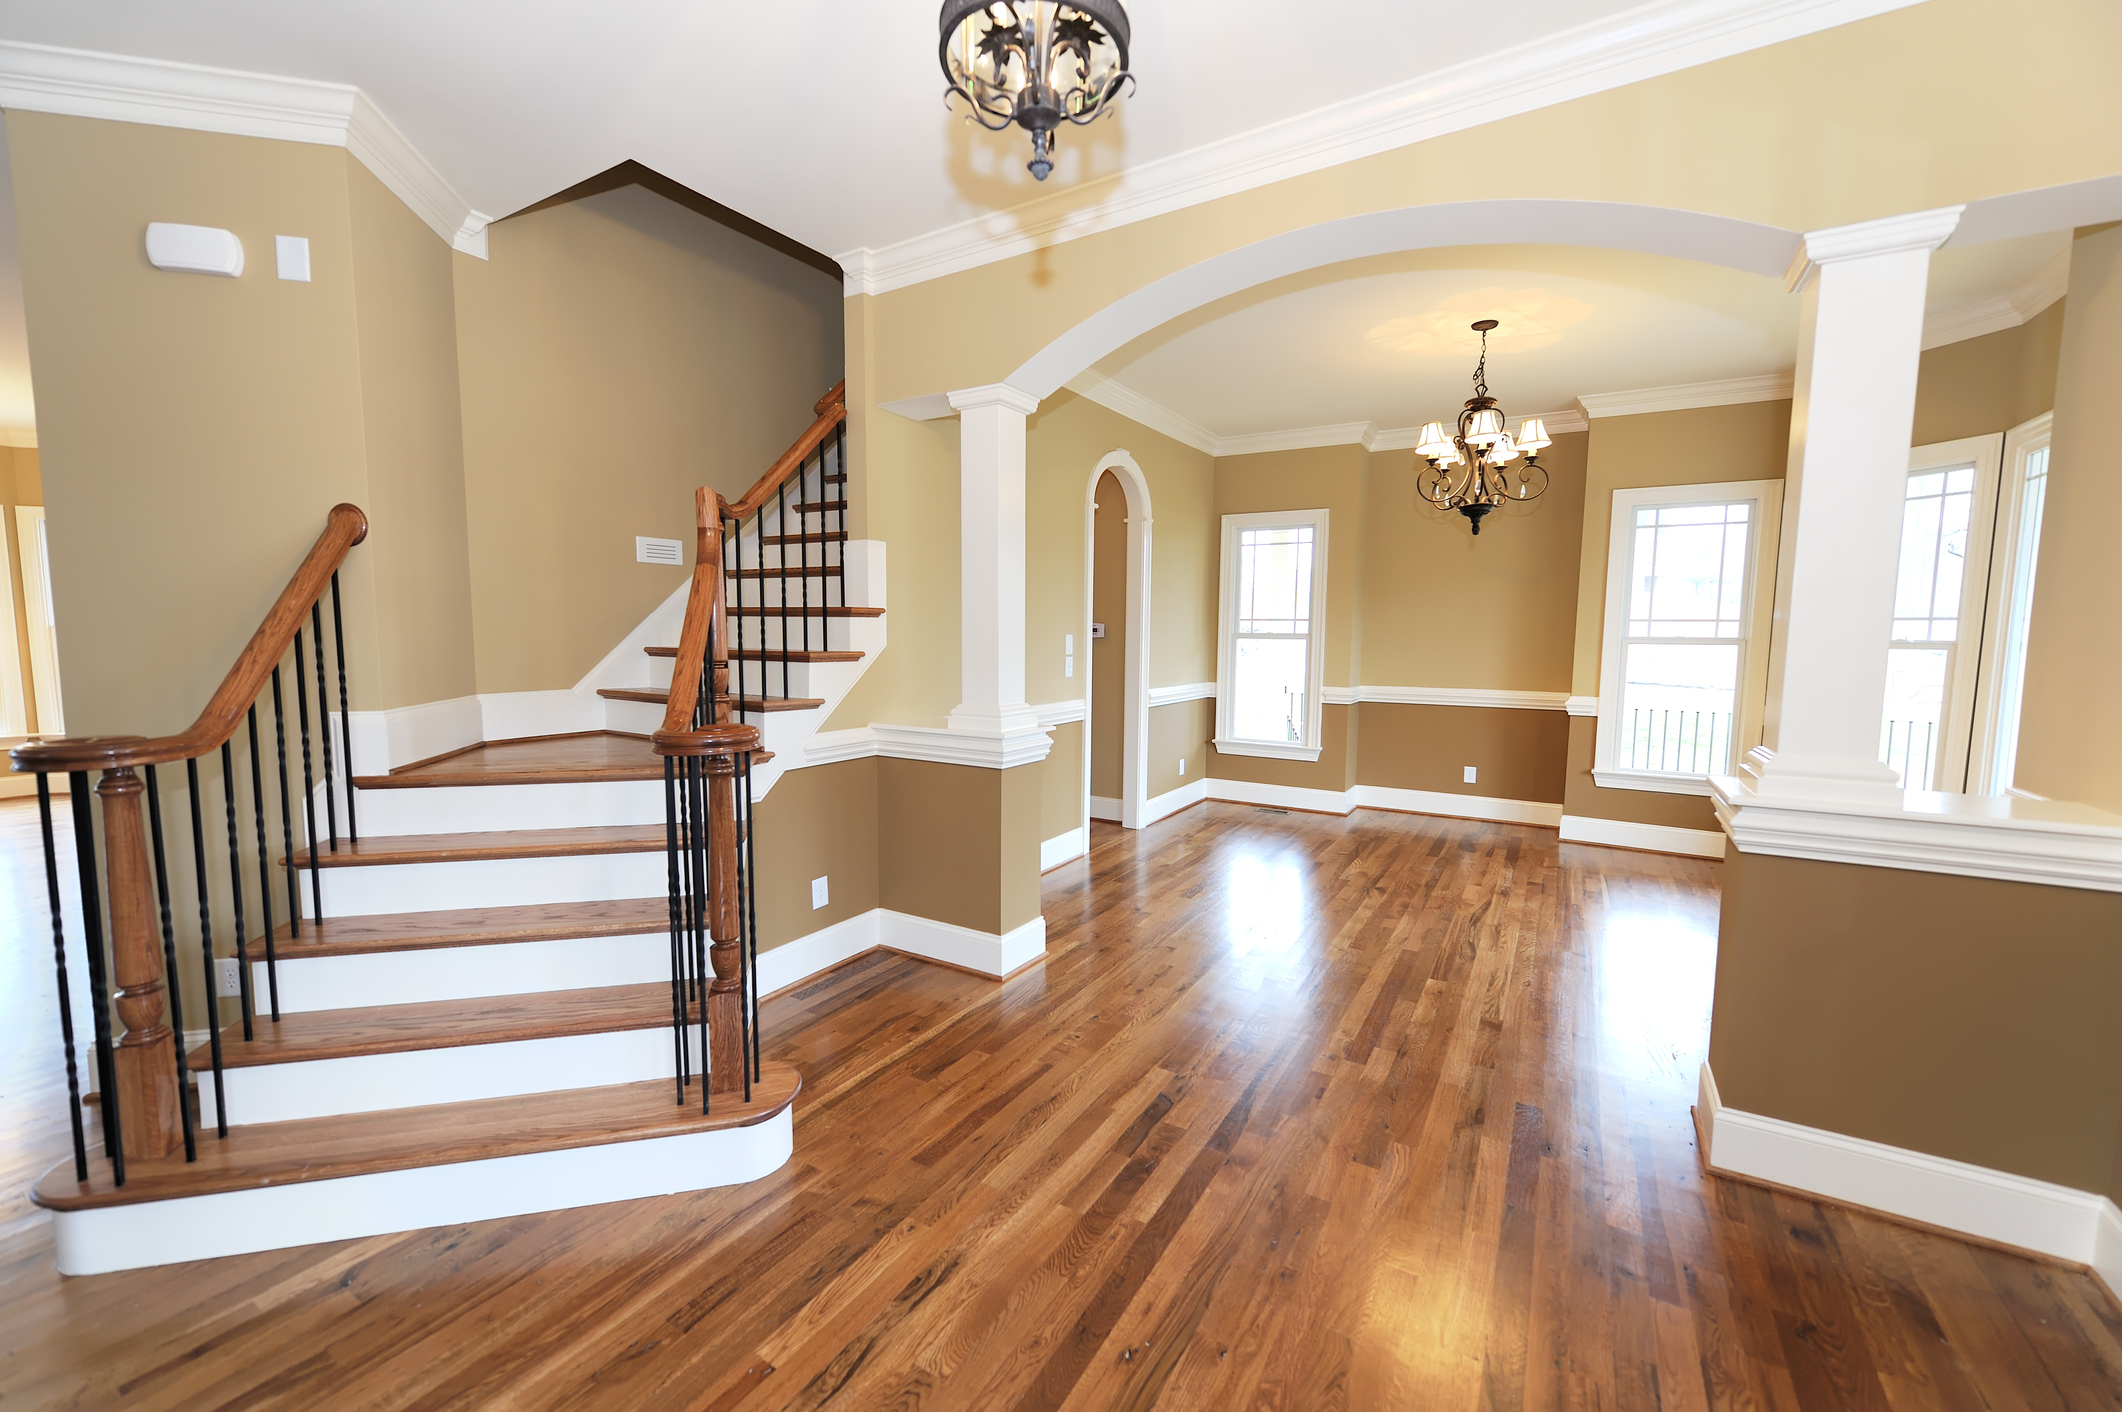 Home interior with hardwood floors and stairs.